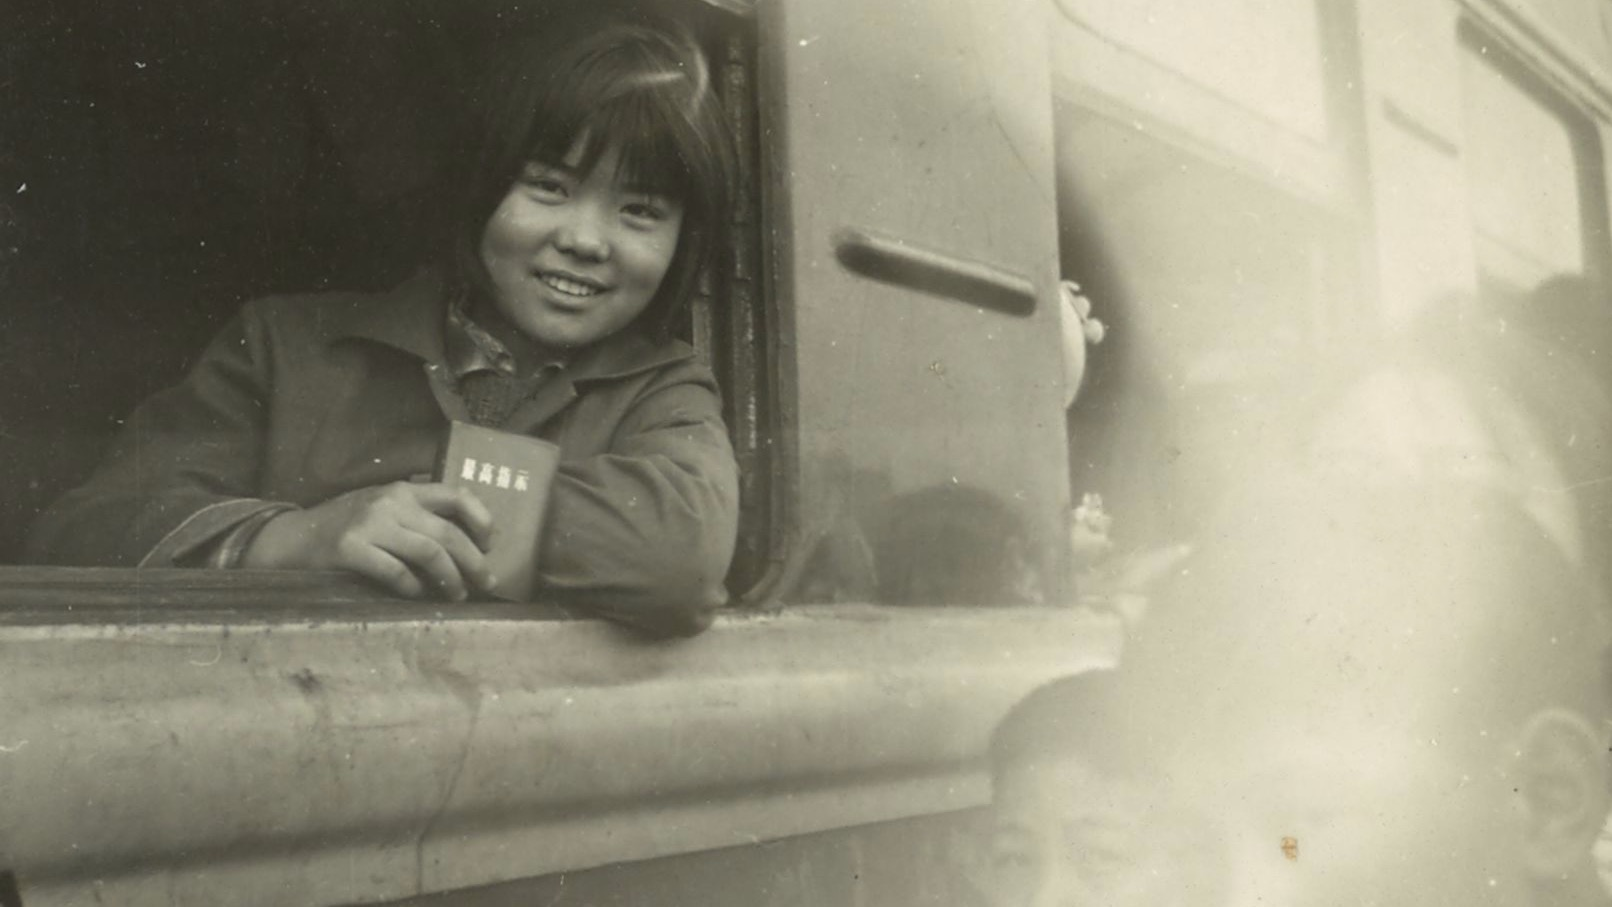 image of a girl riding a train in Shanghai in 1970